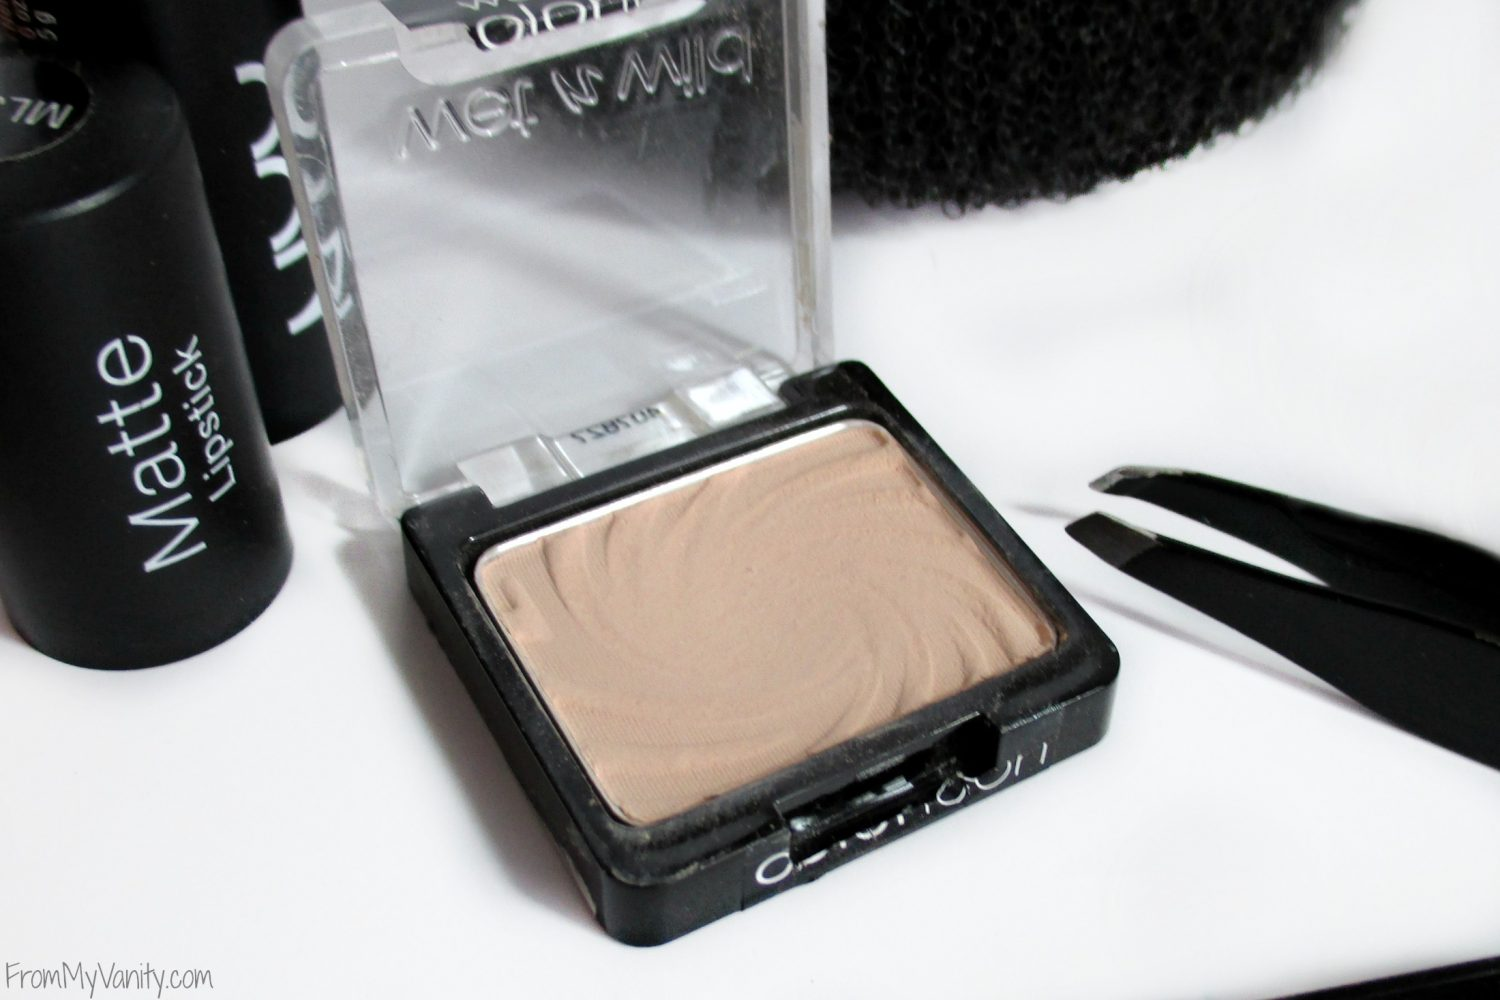 Monthly Beauty Favorites for September // Wet n Wild Color Icon Single Eyeshadow in Cream Brûlée // FromMyVanity.com